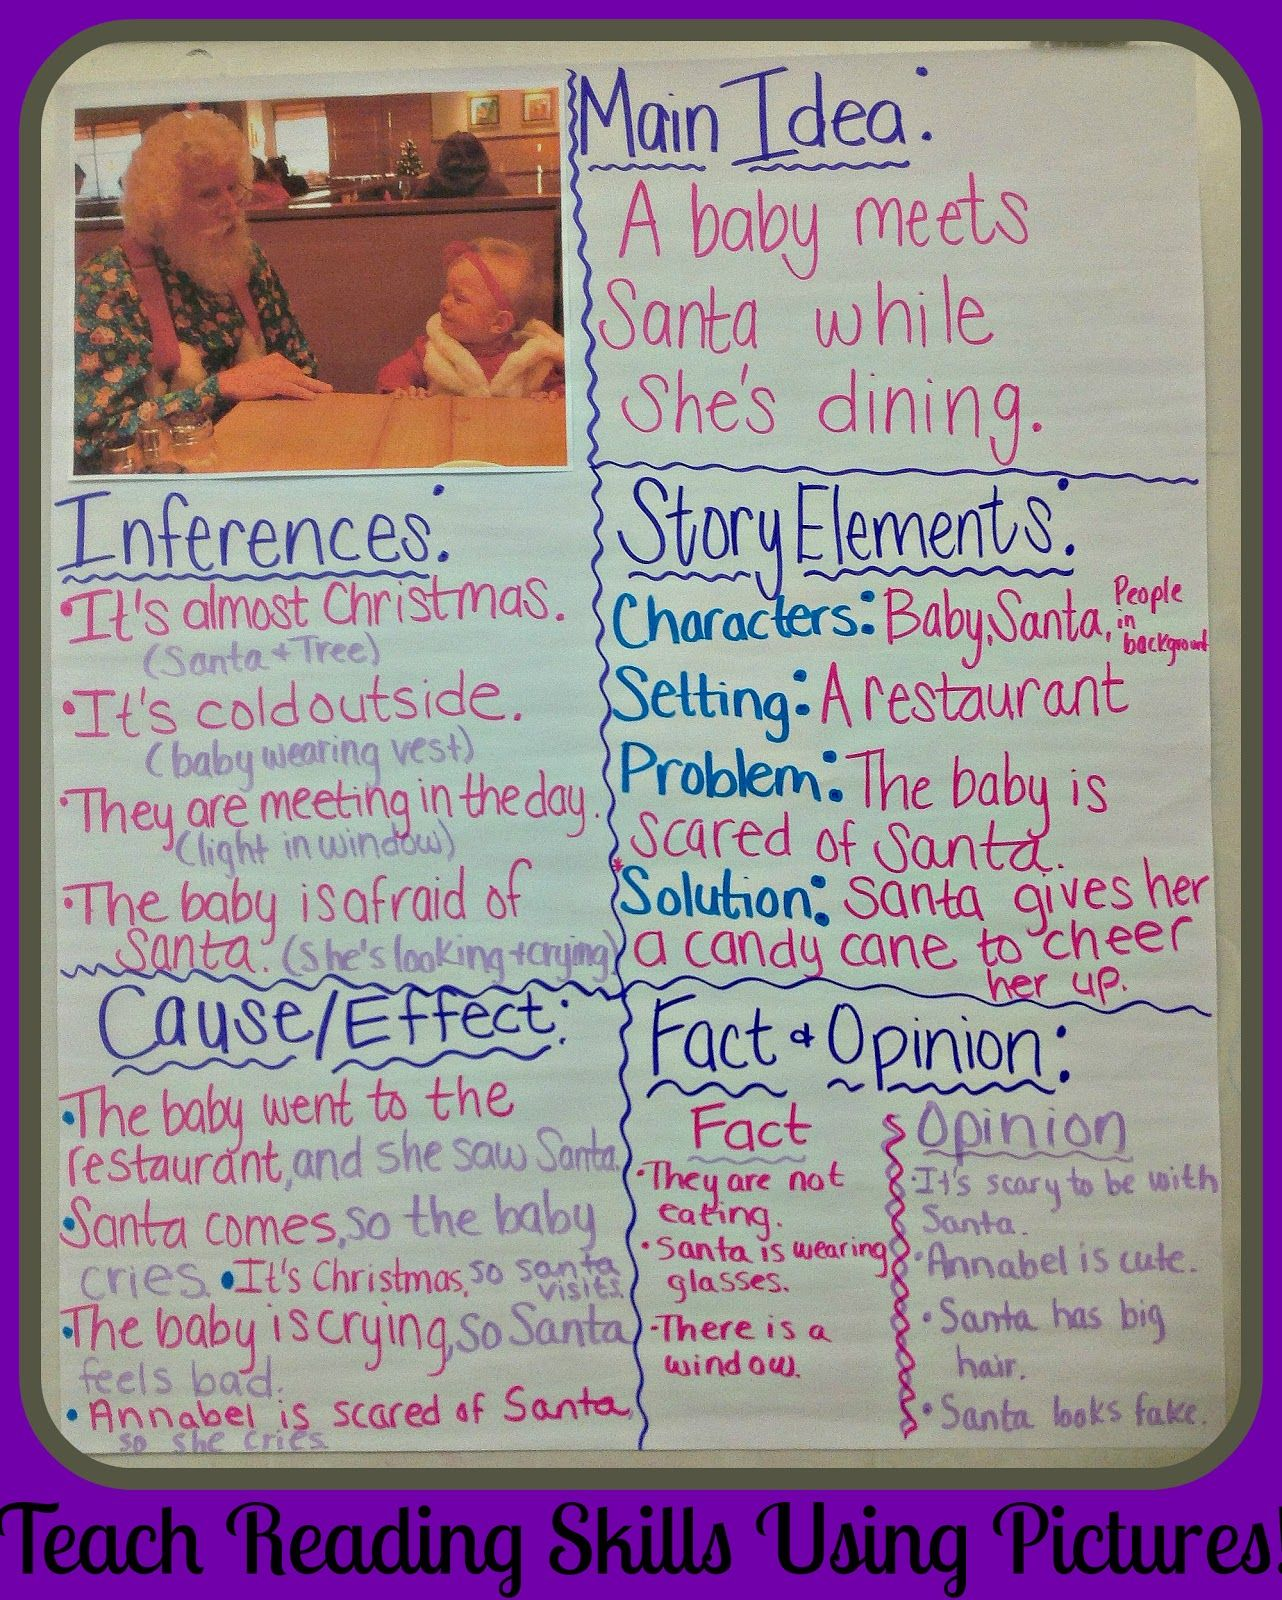 Using Pictures To Teach Key Reading Skills Main Idea